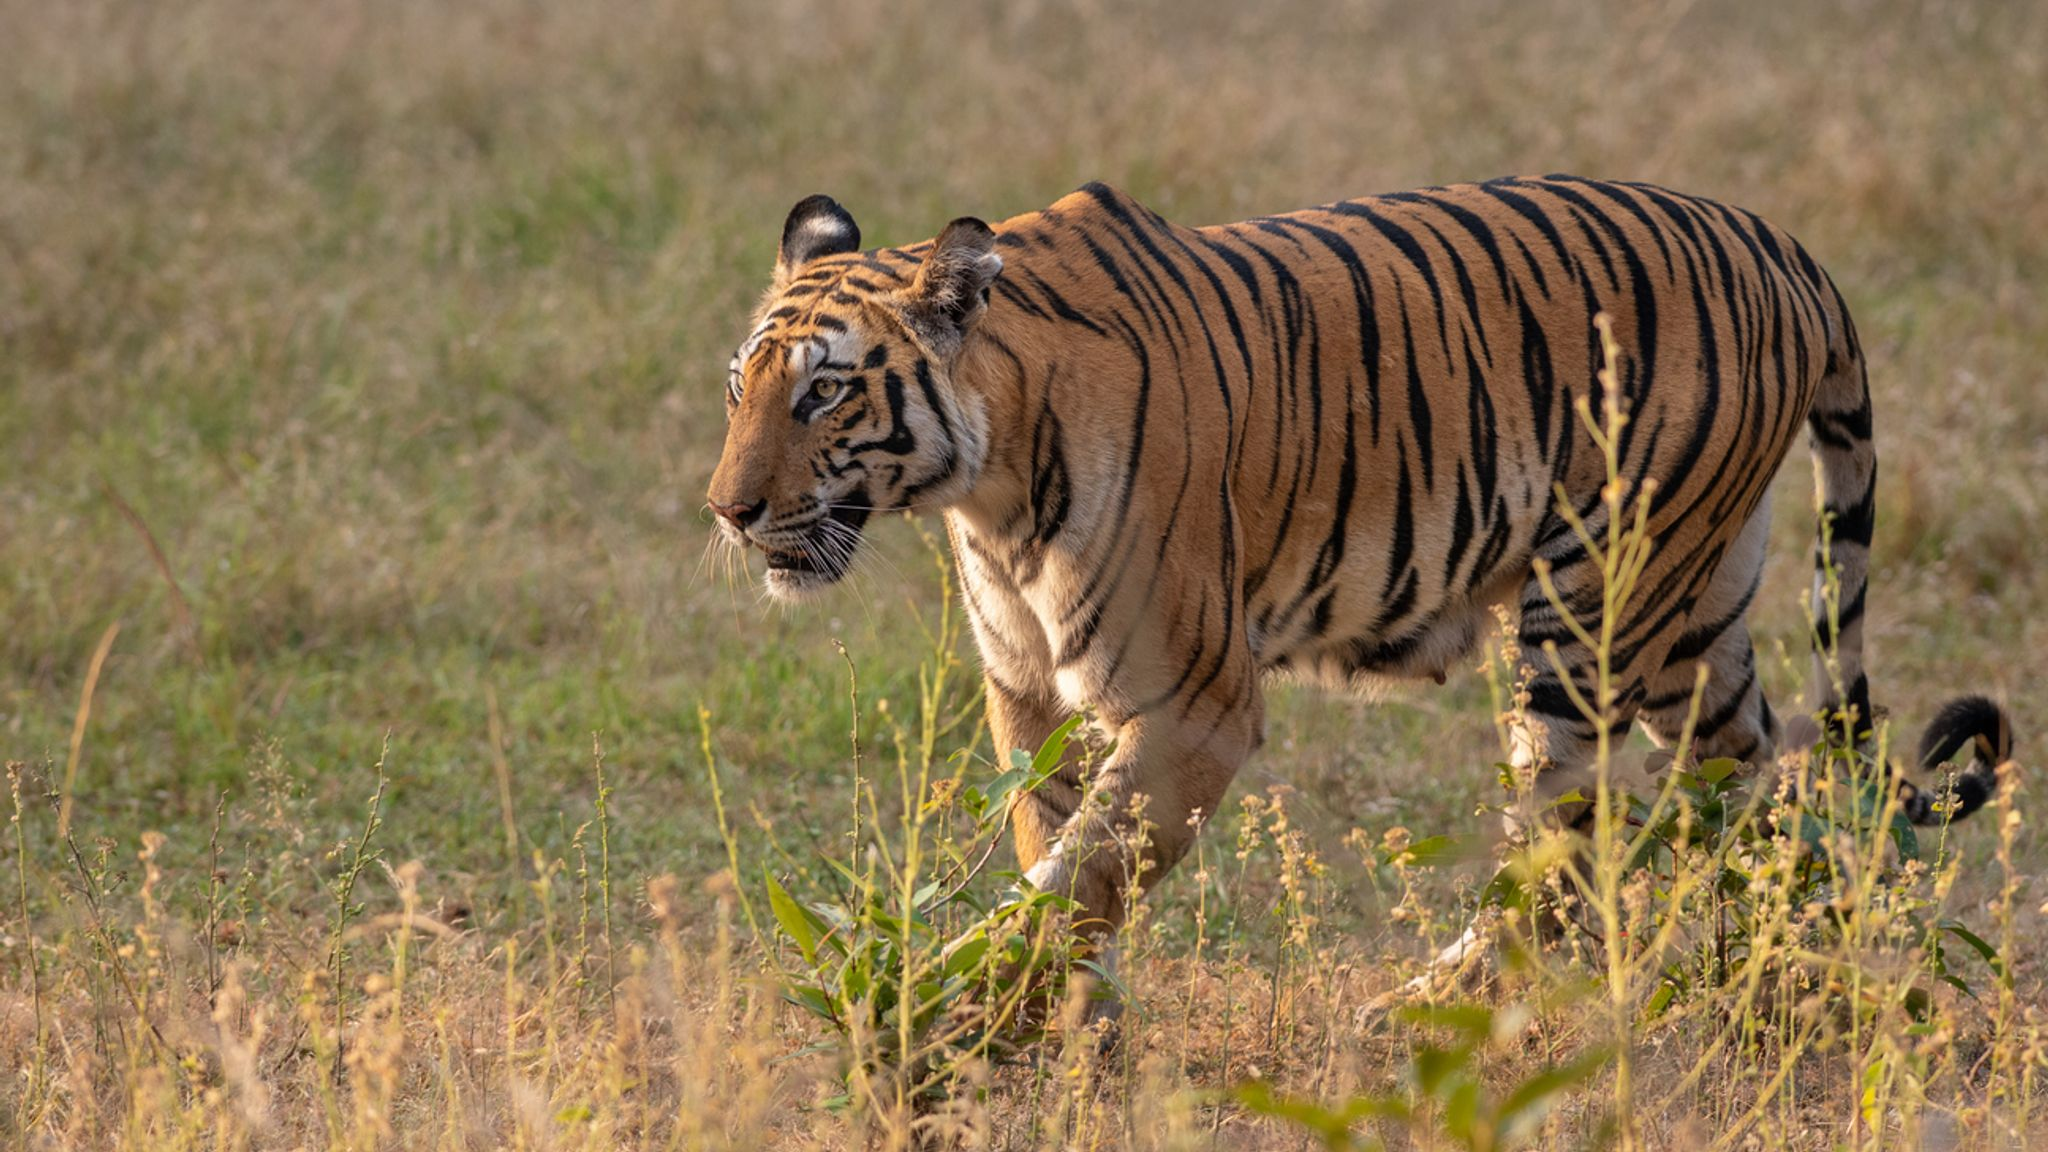 Tiger completes 'longest walk ever' across India